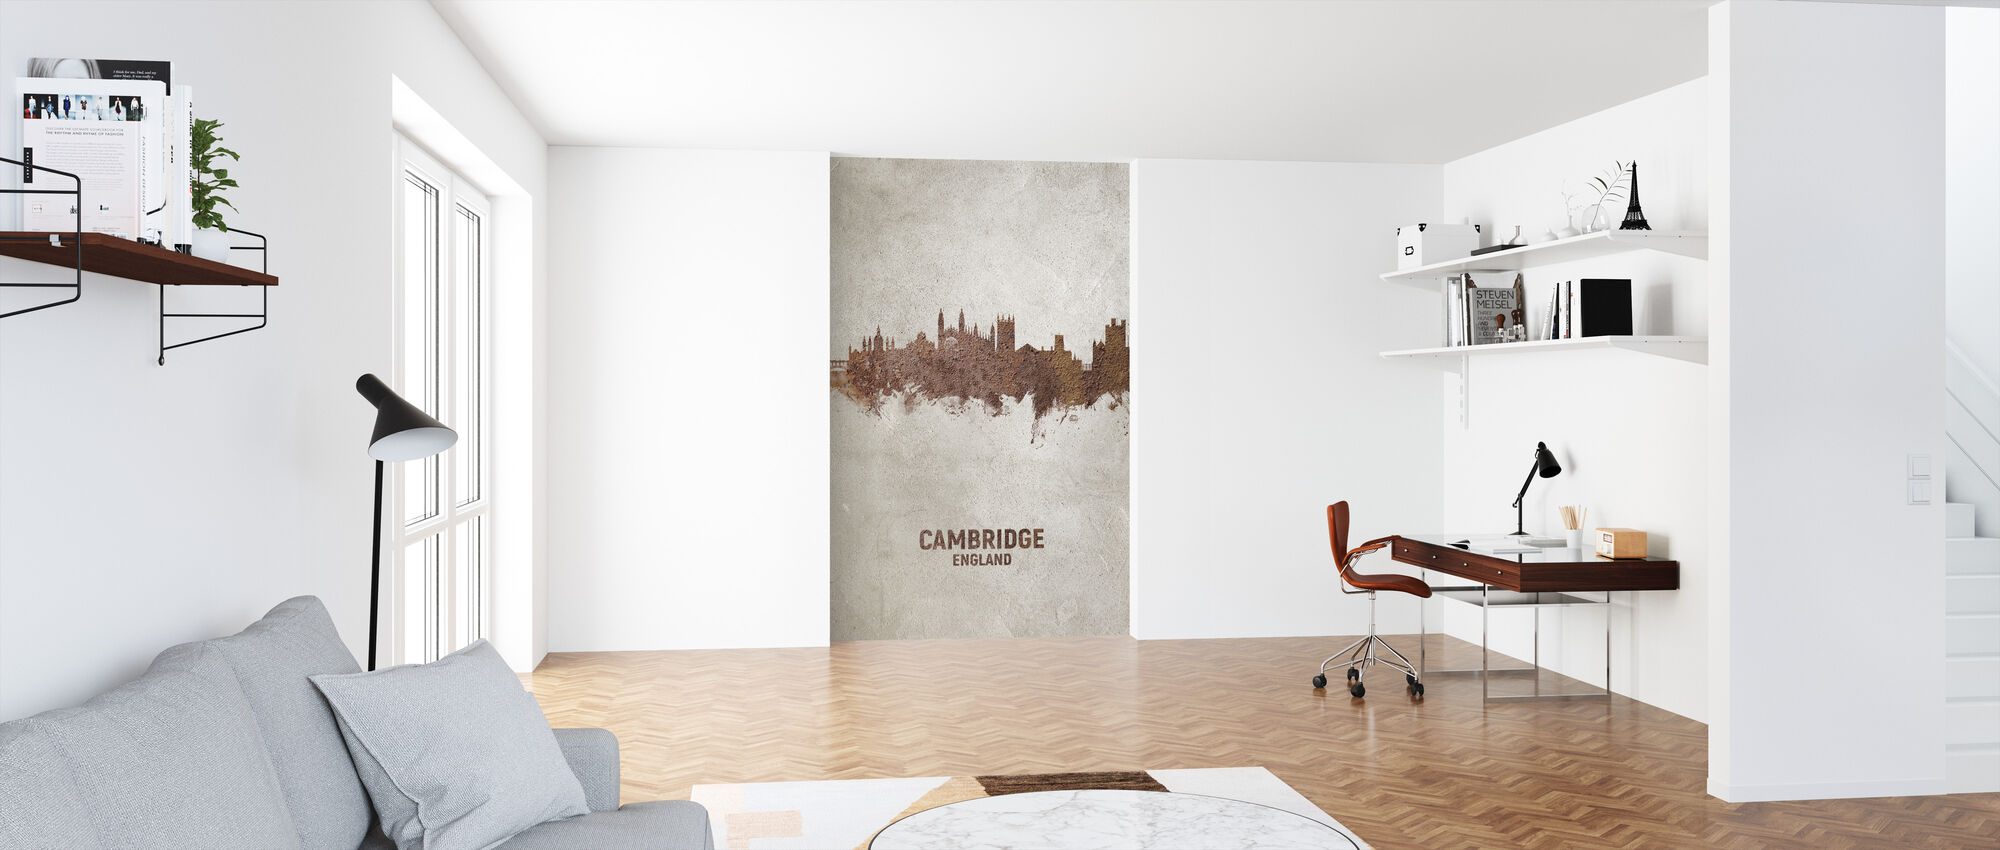 Cambridge England Rust Skyline - Wallpaper - Office